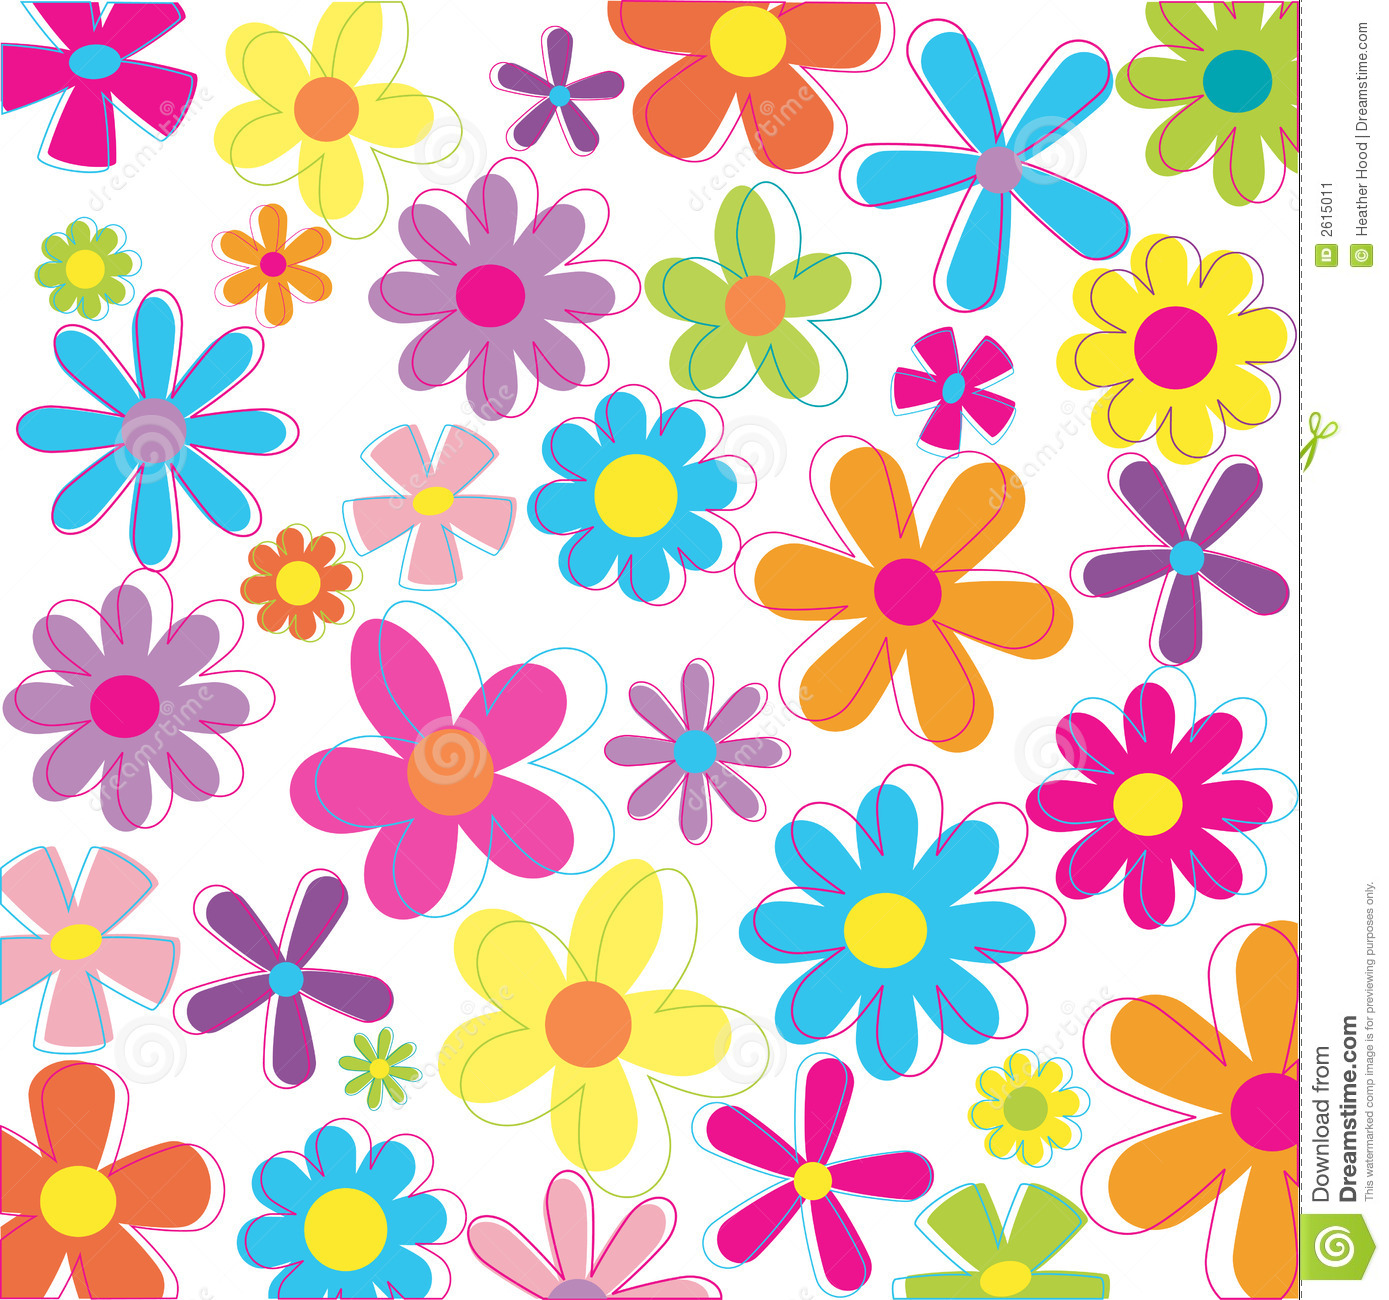 Retro Flowers Stock Image   Image  2615011